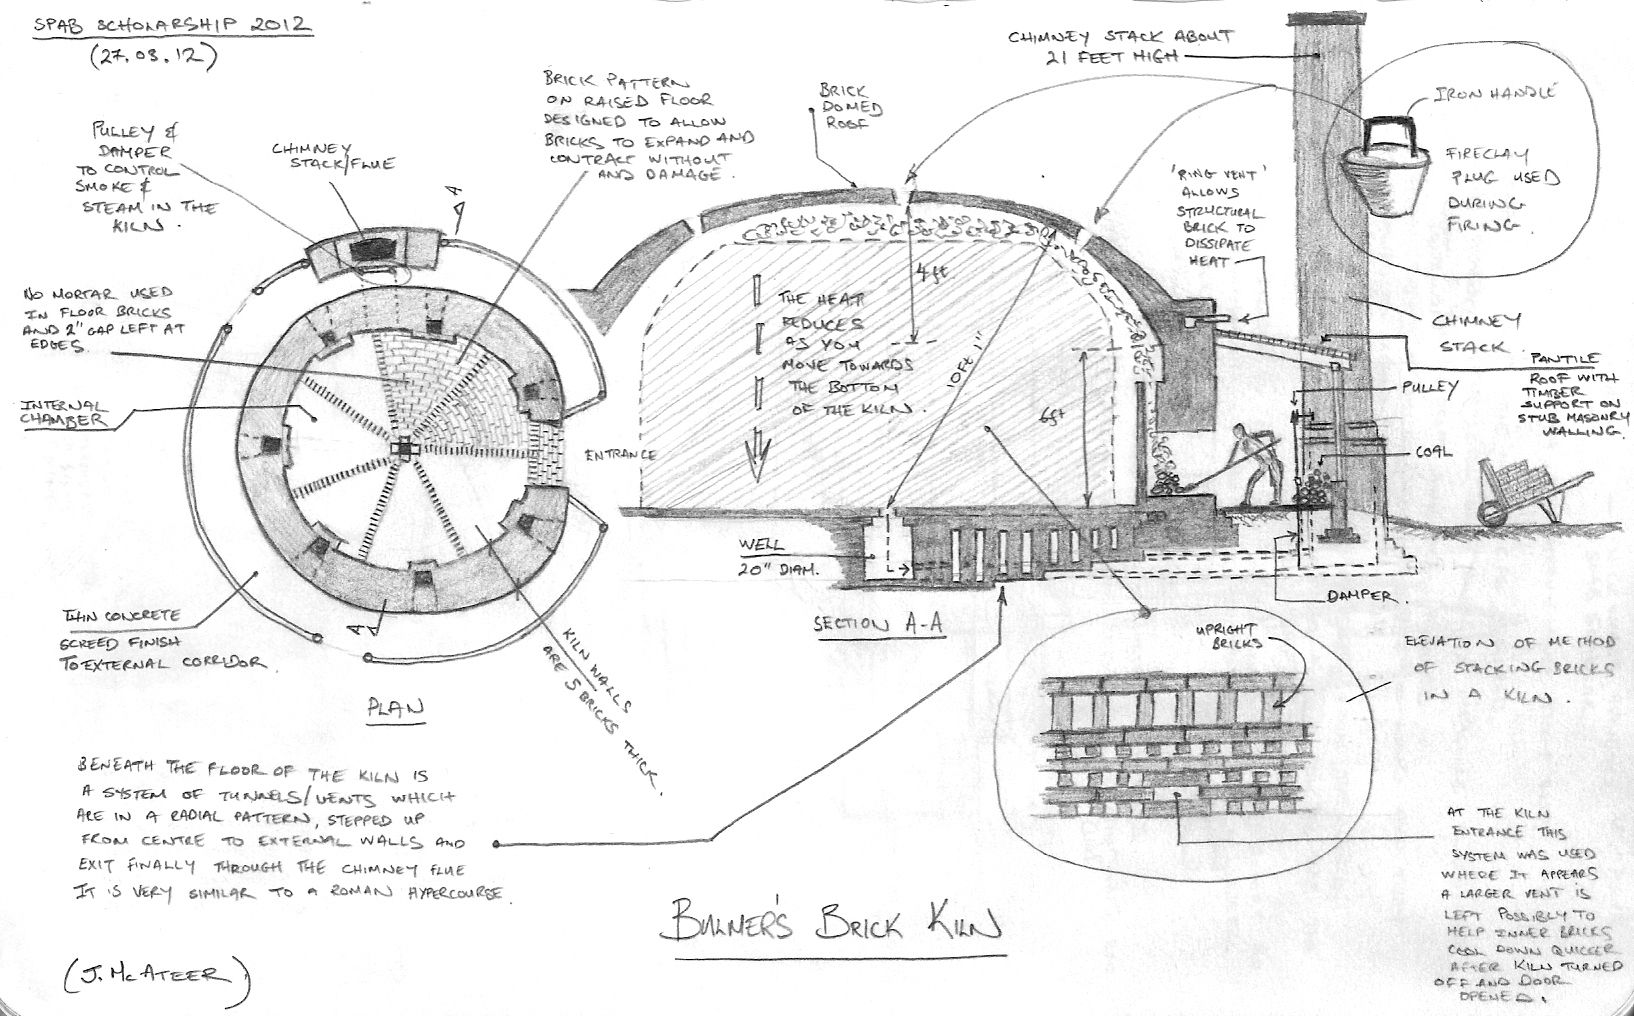 Sketch Of Brick Kiln At Bulmer Brick Amp Tile Co Copyright